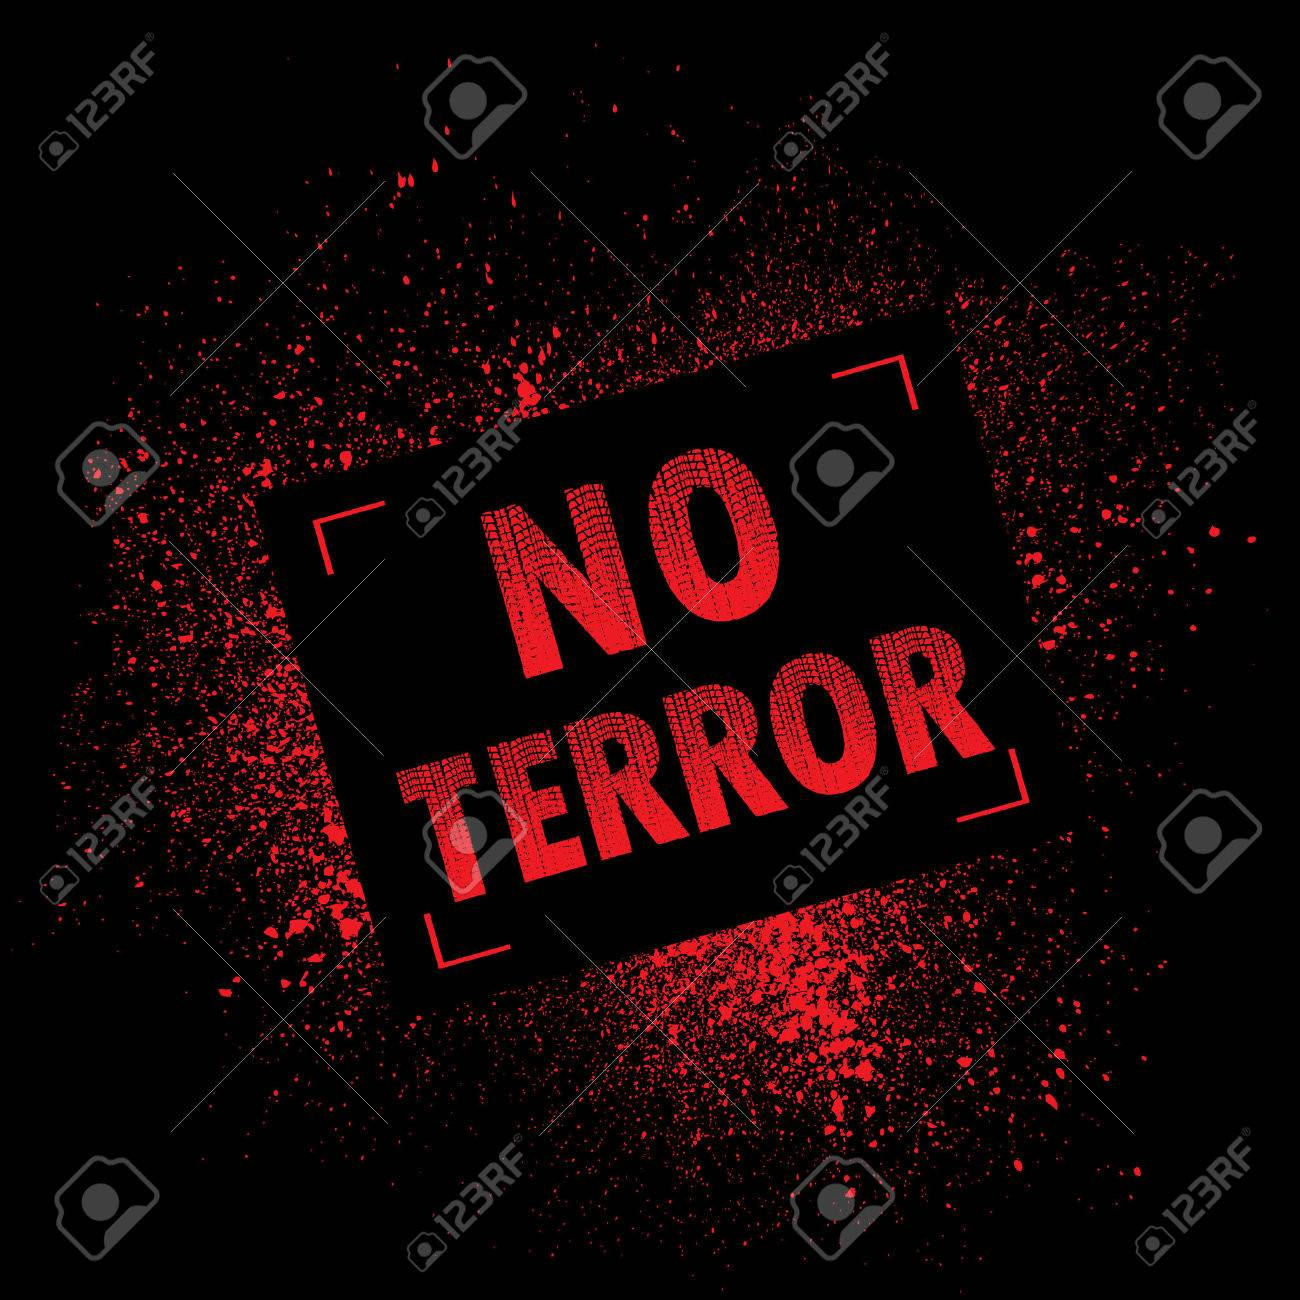 Black background with red ink splash and NO TERROR text - 62375806